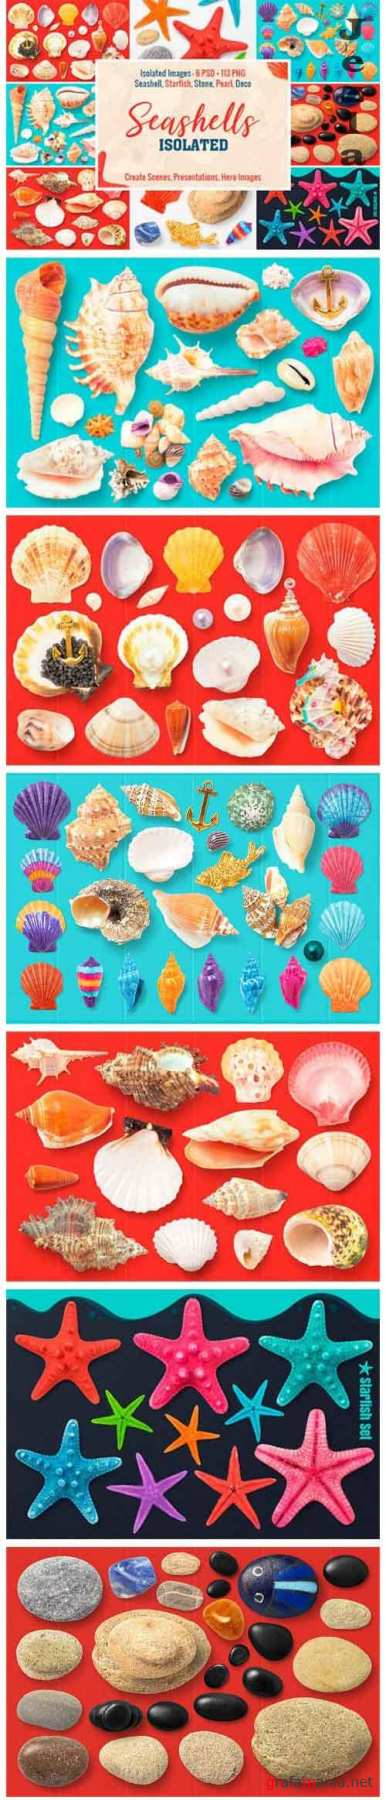 Isolated Seashells & Stones - 1776922